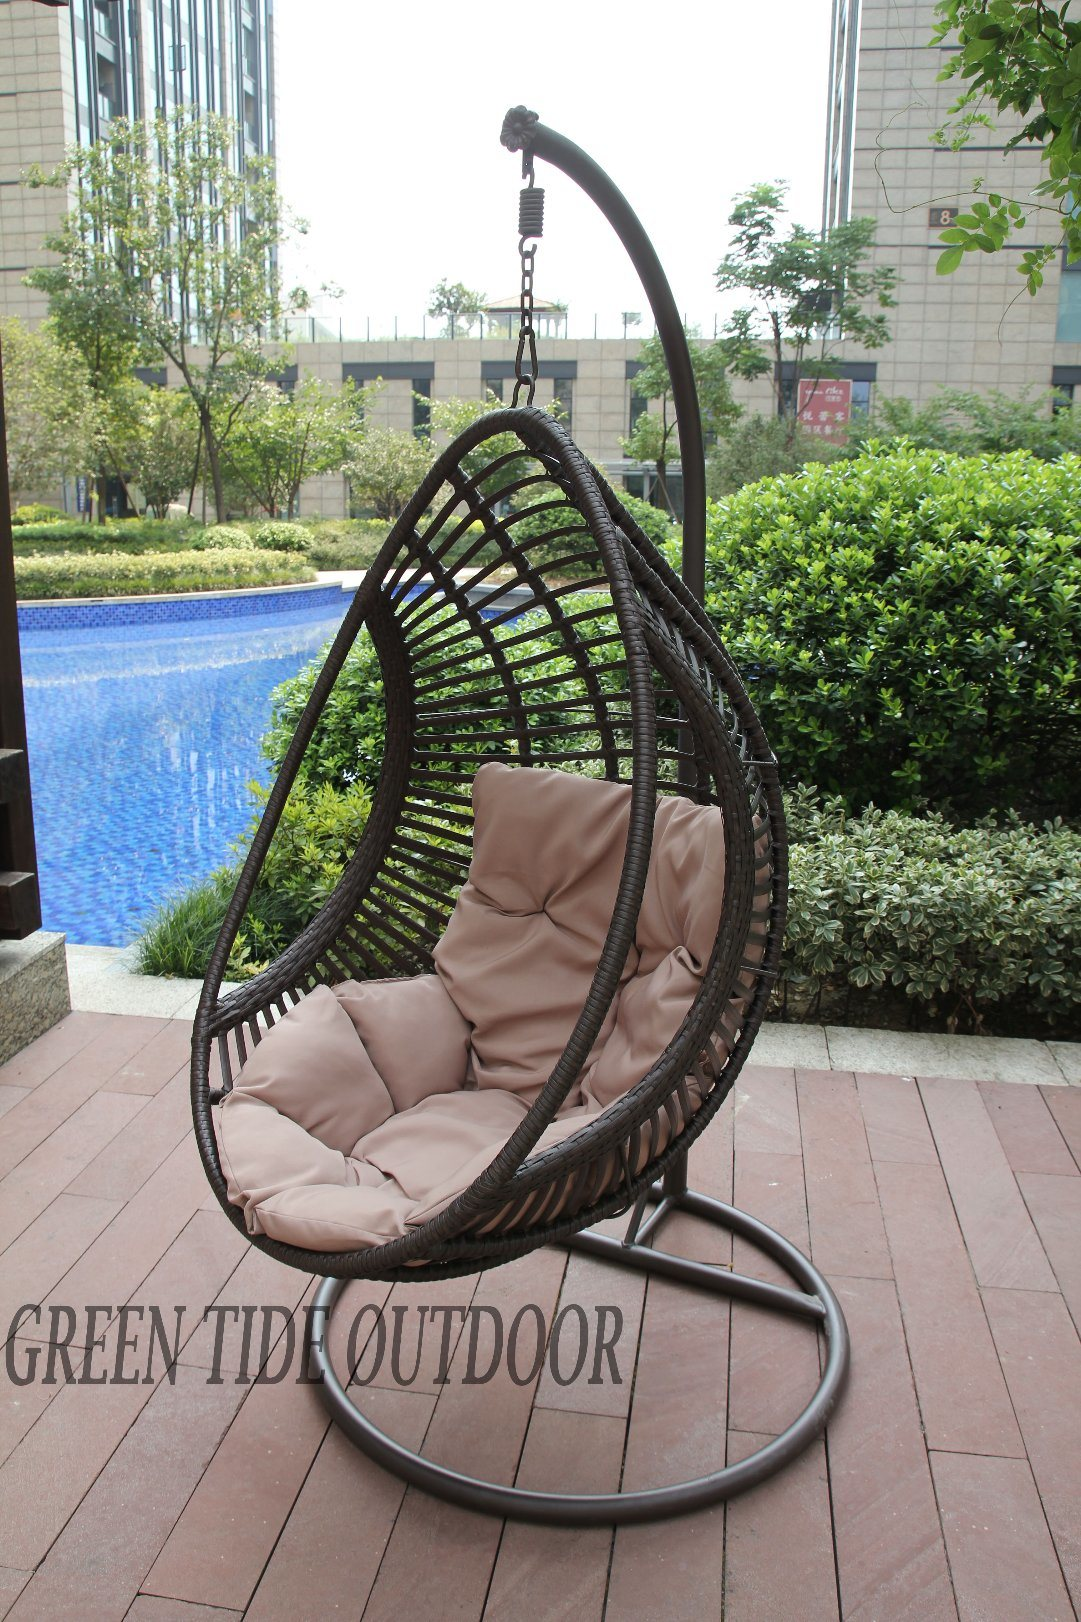 Hanging Patio Chair China Outdoor Garden Patio Home Furniture Rattan Drop Hanging